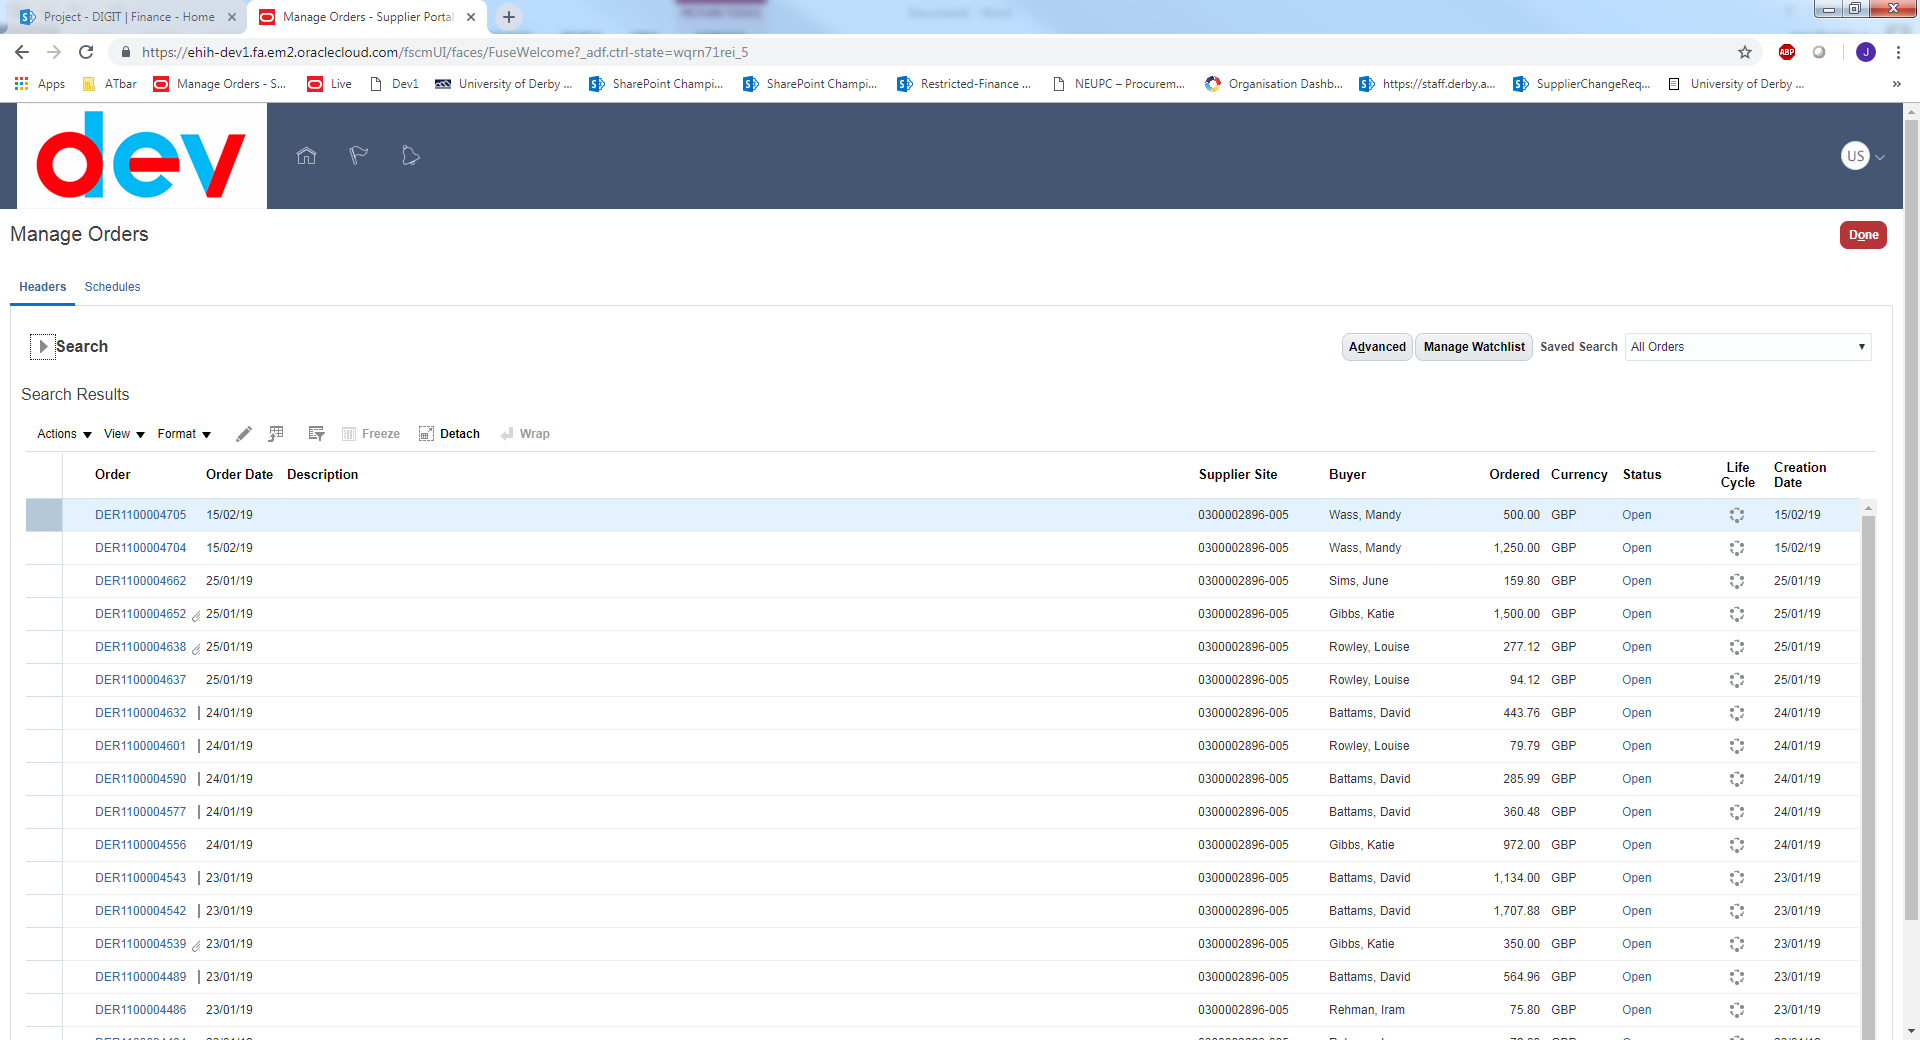 A screenshot of the Oracle Finance screen showing a list of orders from a supplier